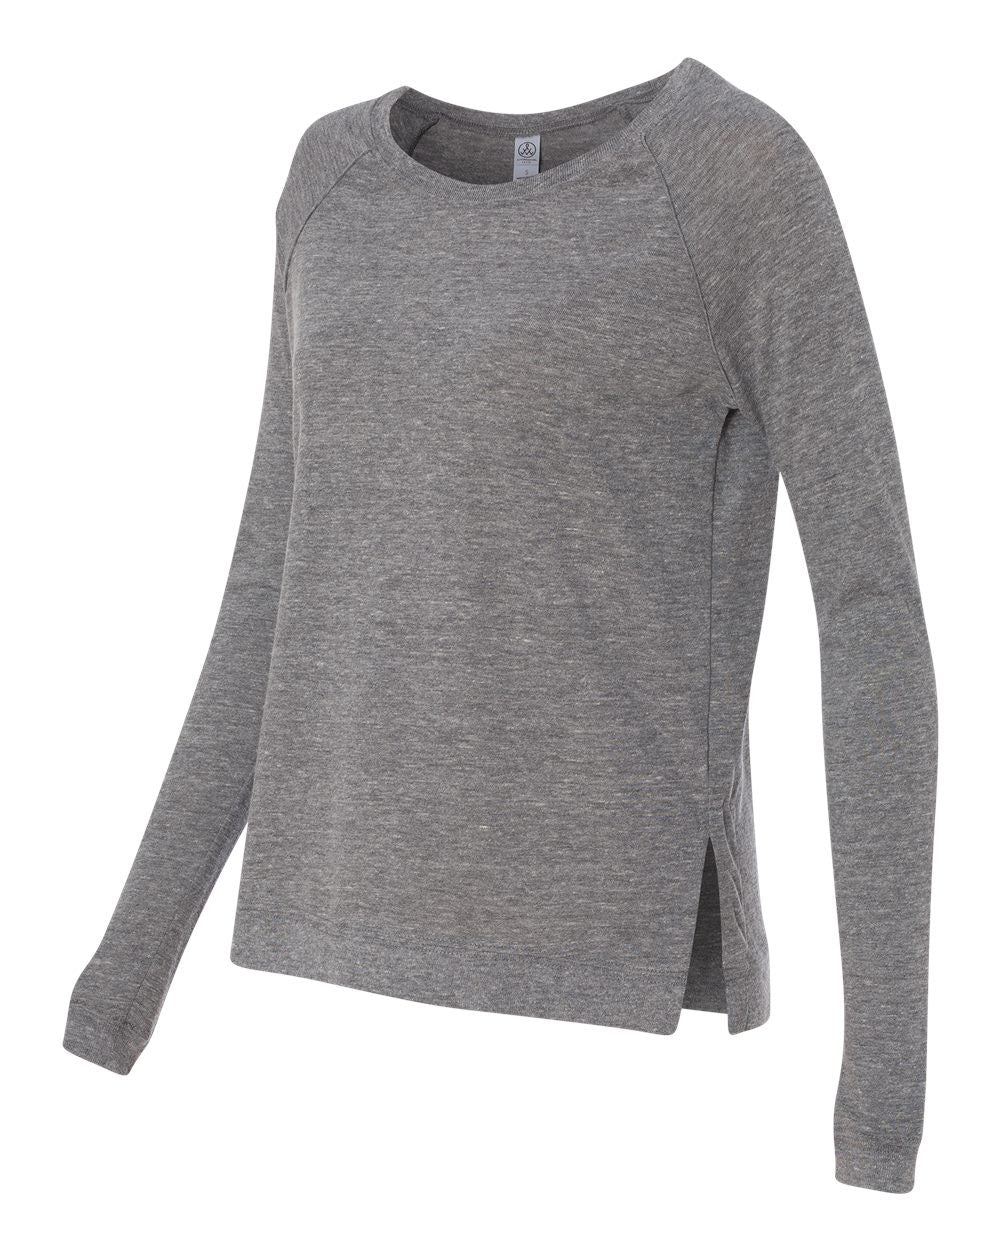 Organic Cotton  Raglan Lightweight Pullover for Women